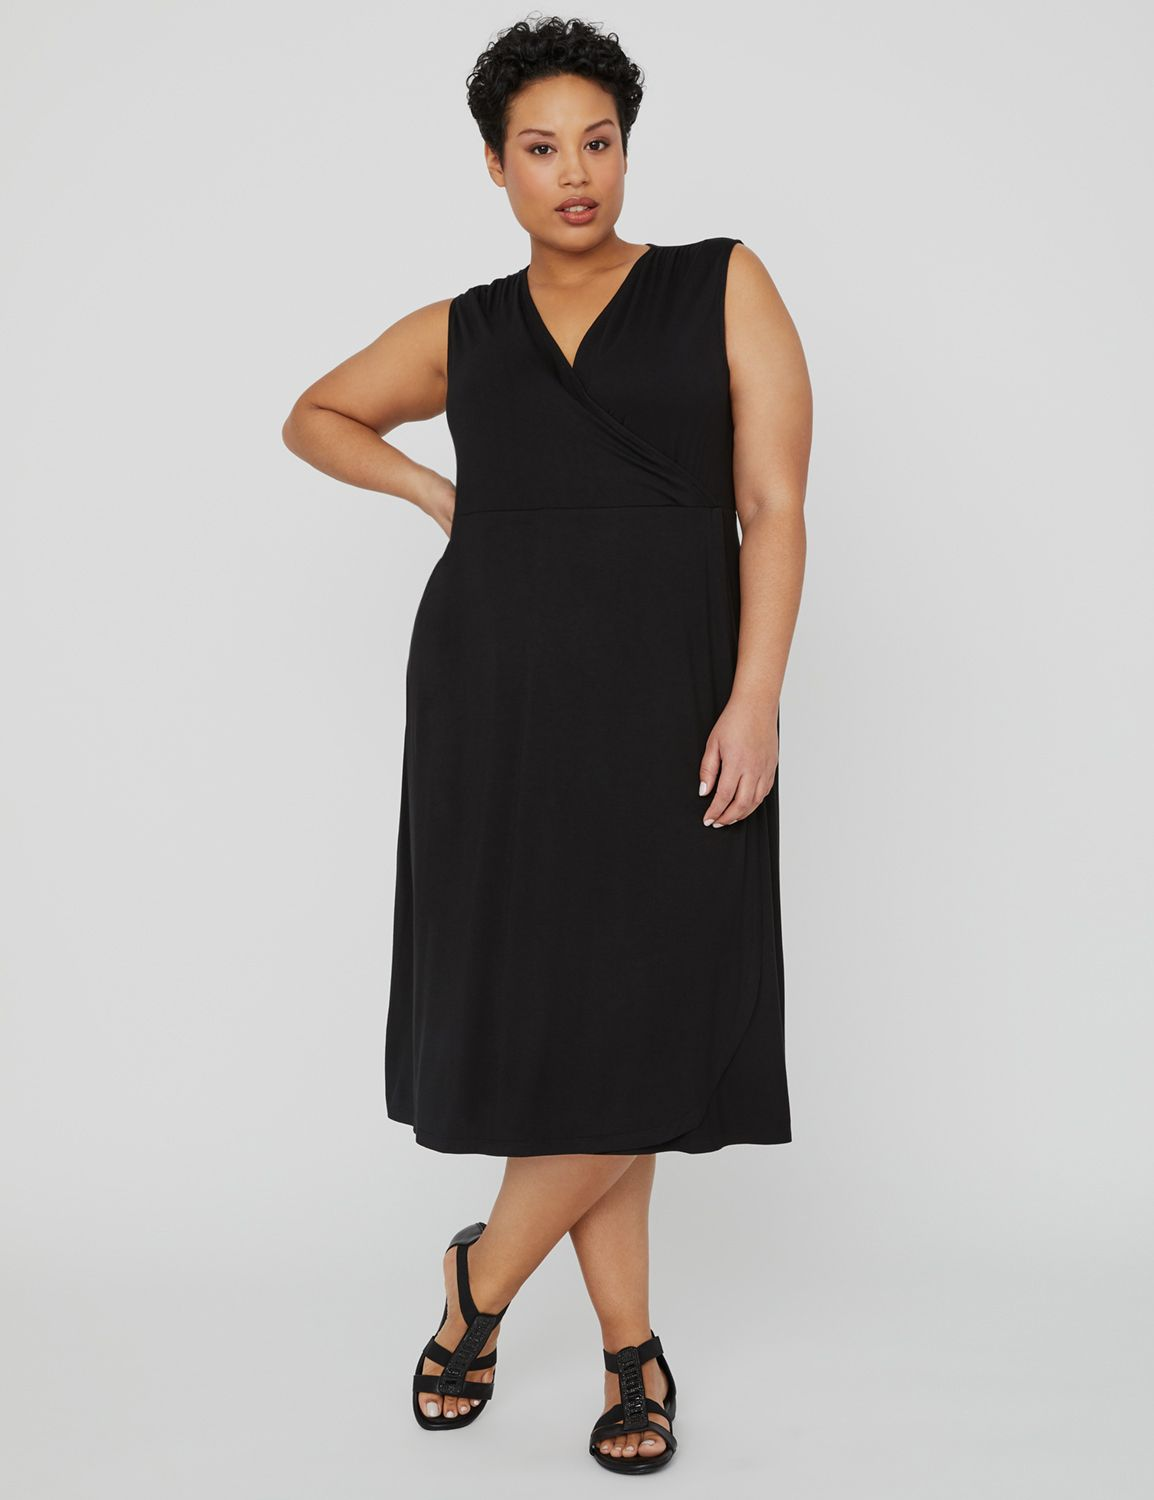 Riverview Wrap Dress 1088151 Vneck Front and Back Maxi E MP-300102445